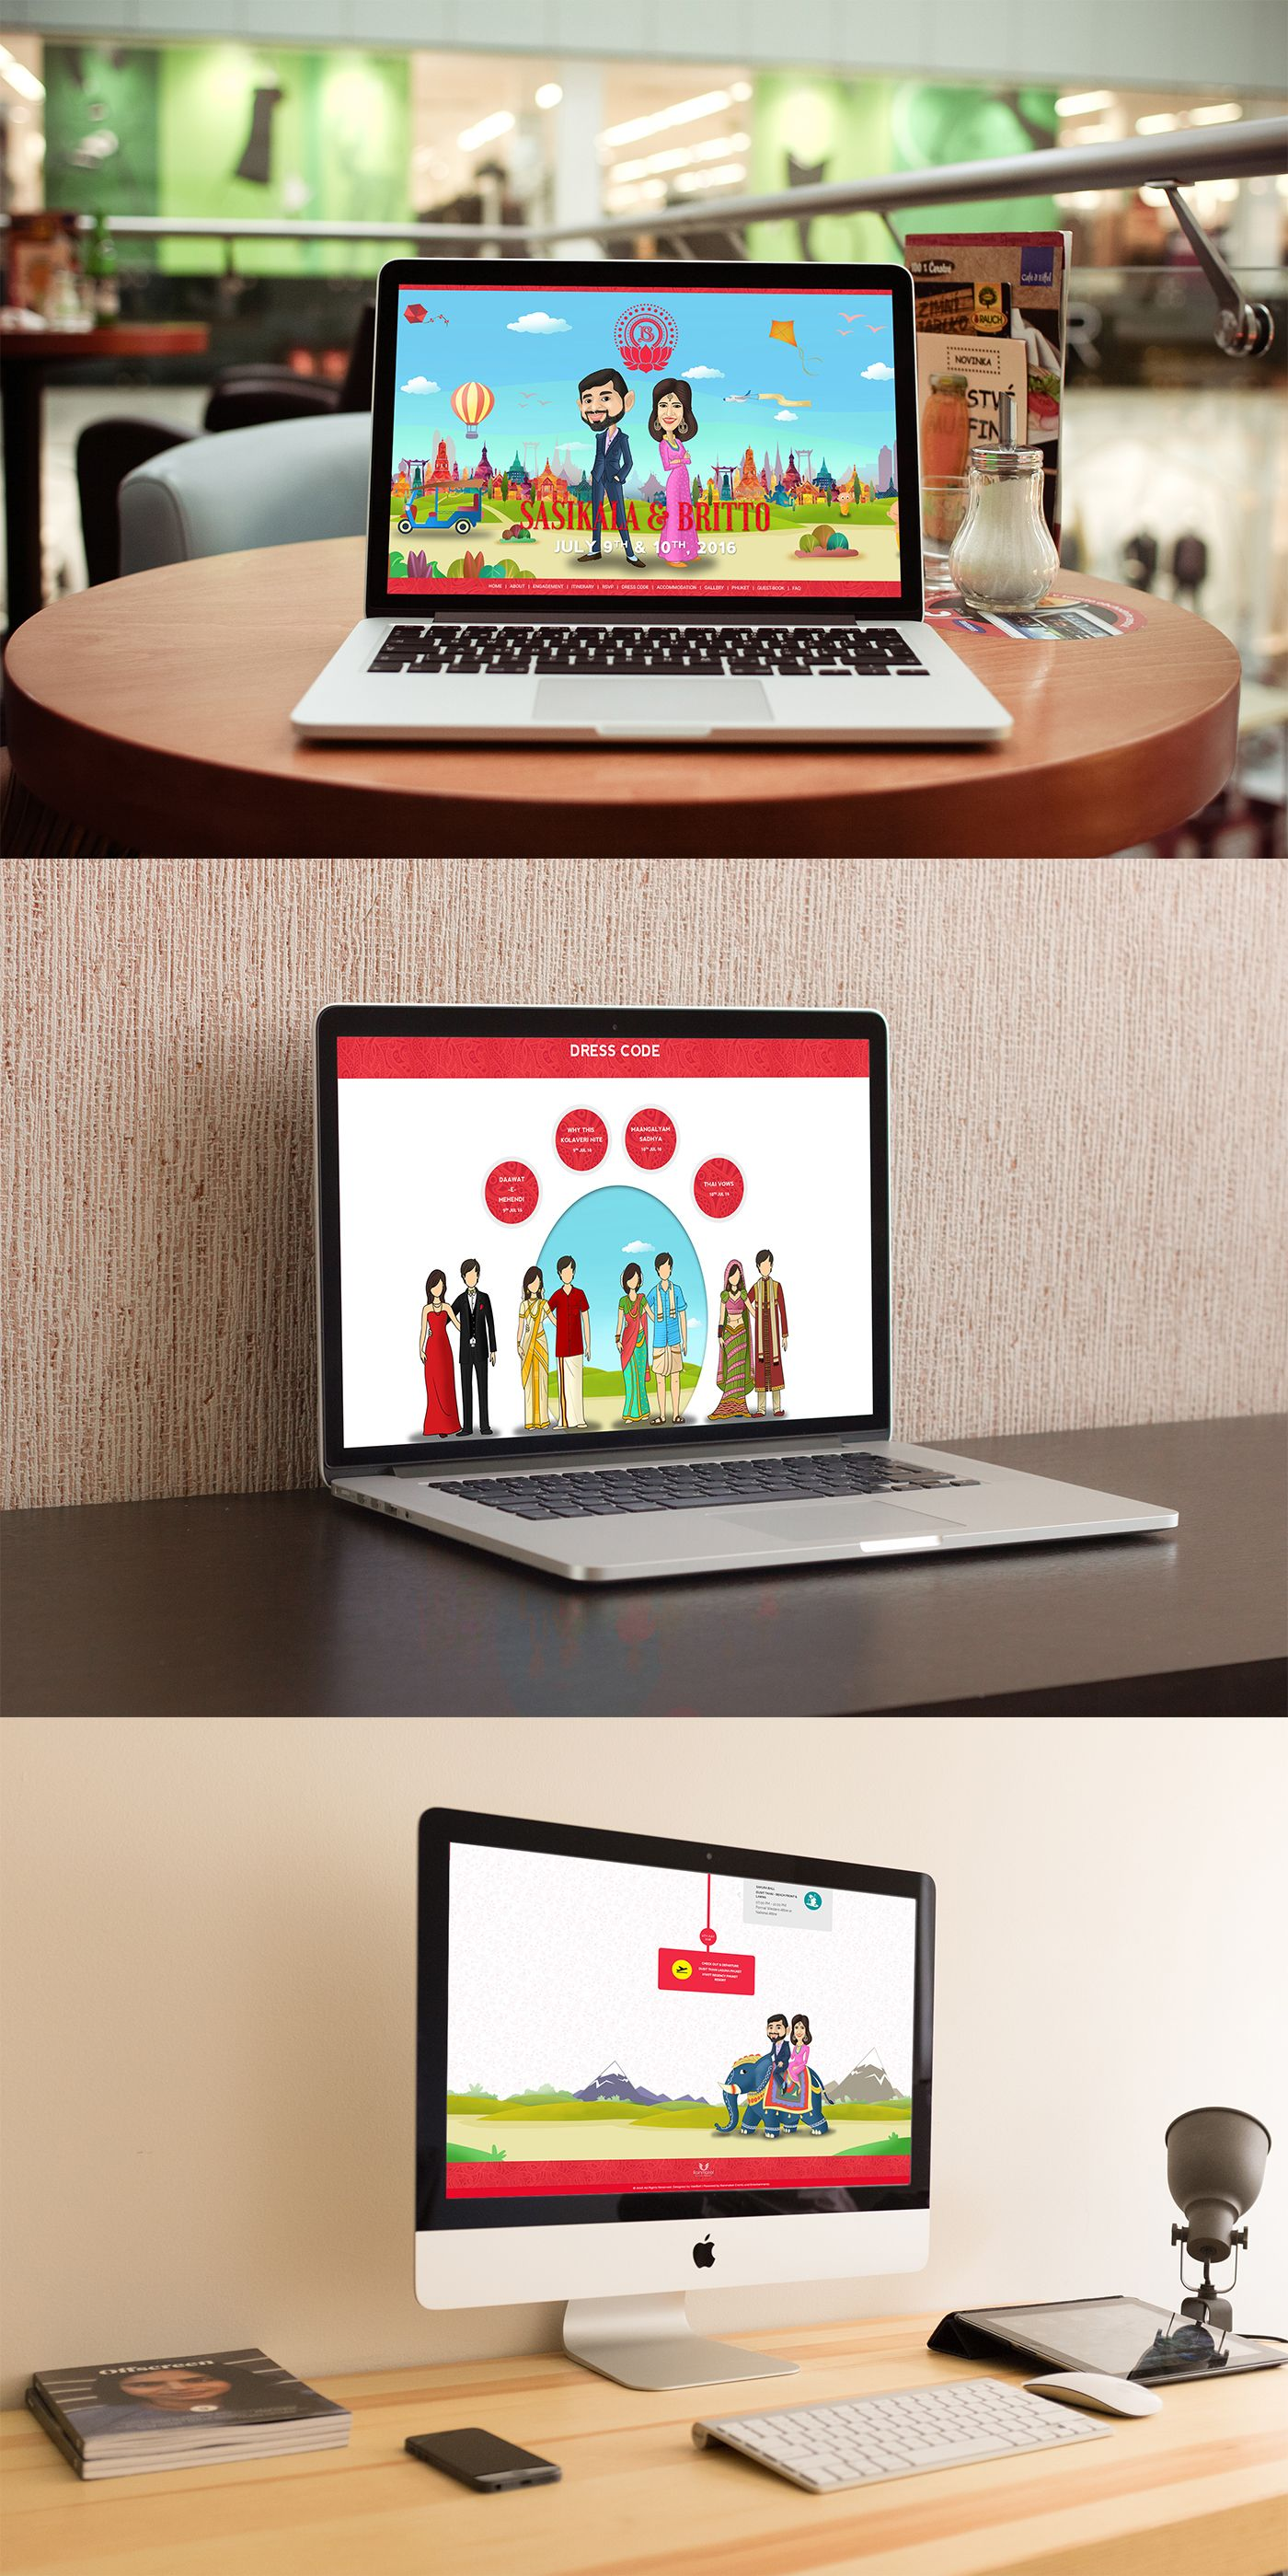 """Check out my @Behance project: """"Sasikala Britto Wedding Website"""" https://www.behance.net/gallery/41104701/Sasikala-Britto-Wedding-Website"""